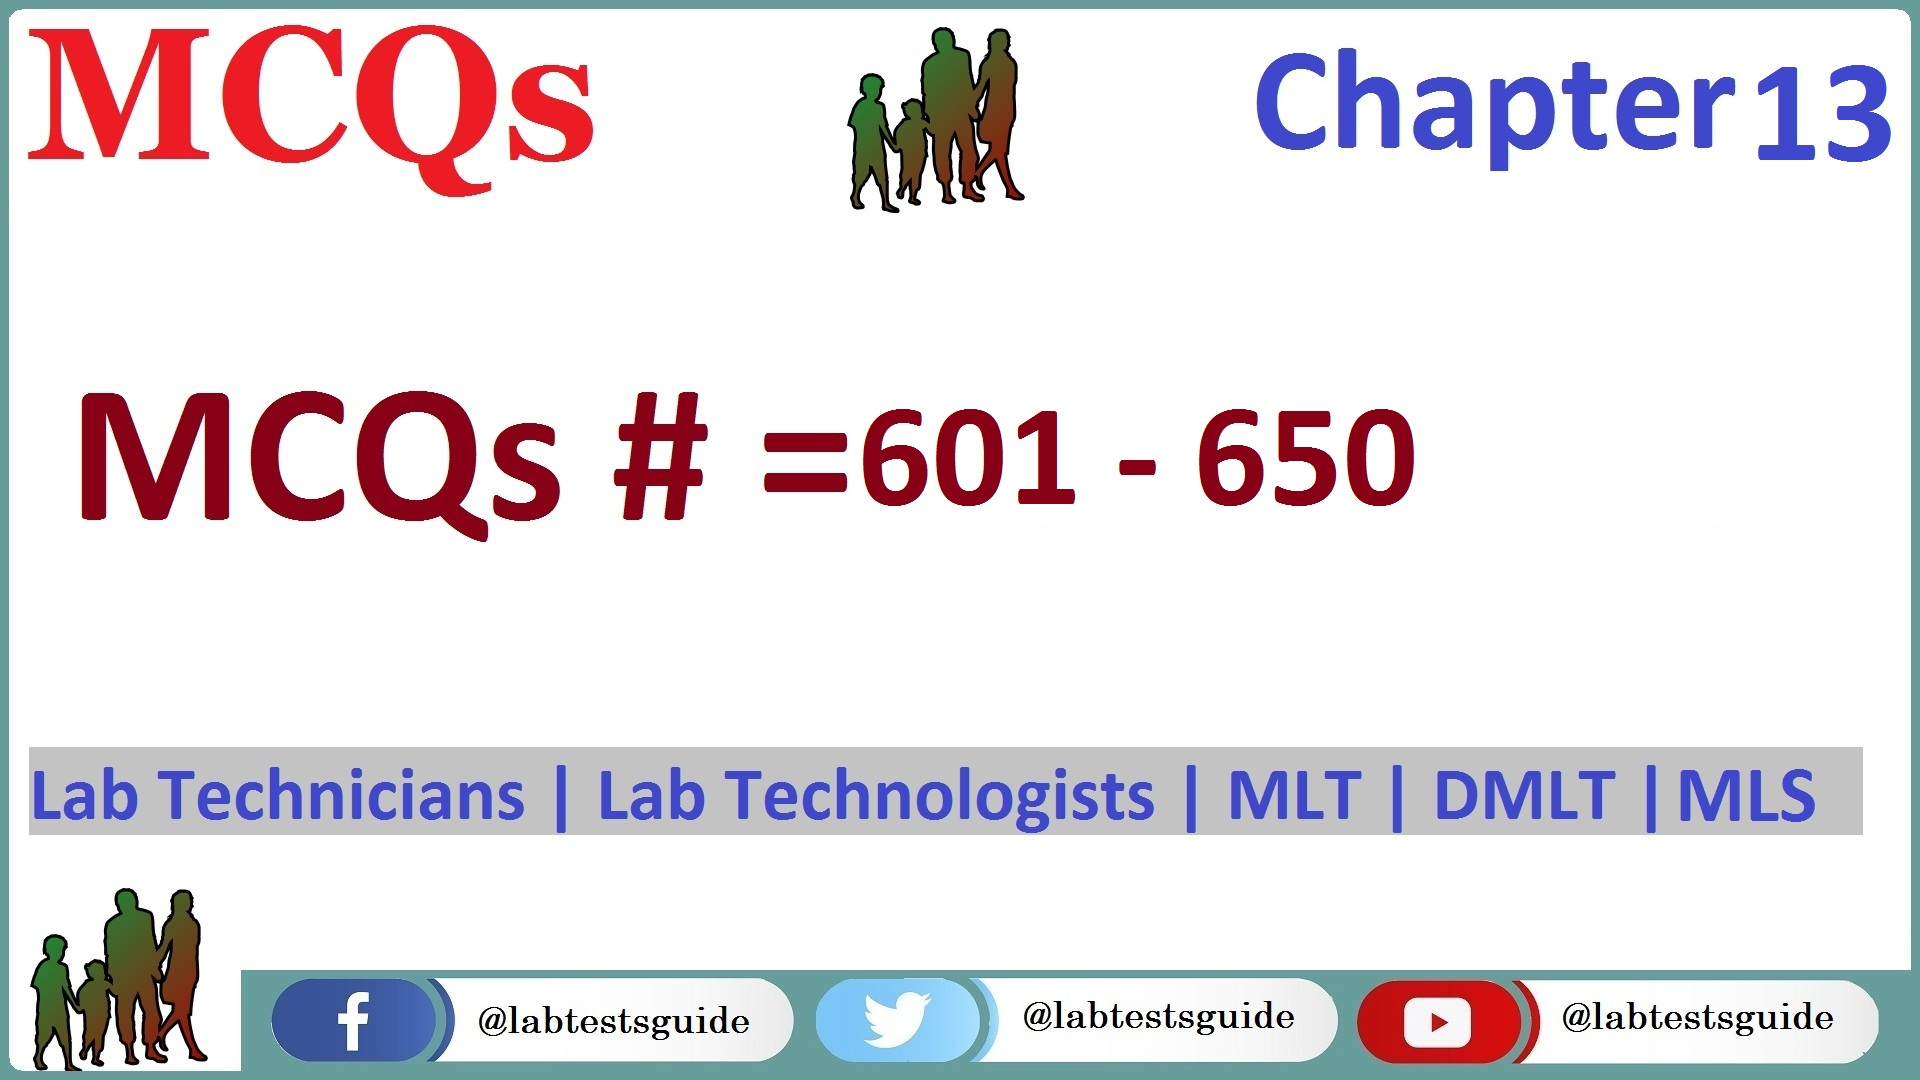 MCQs Chapter 13